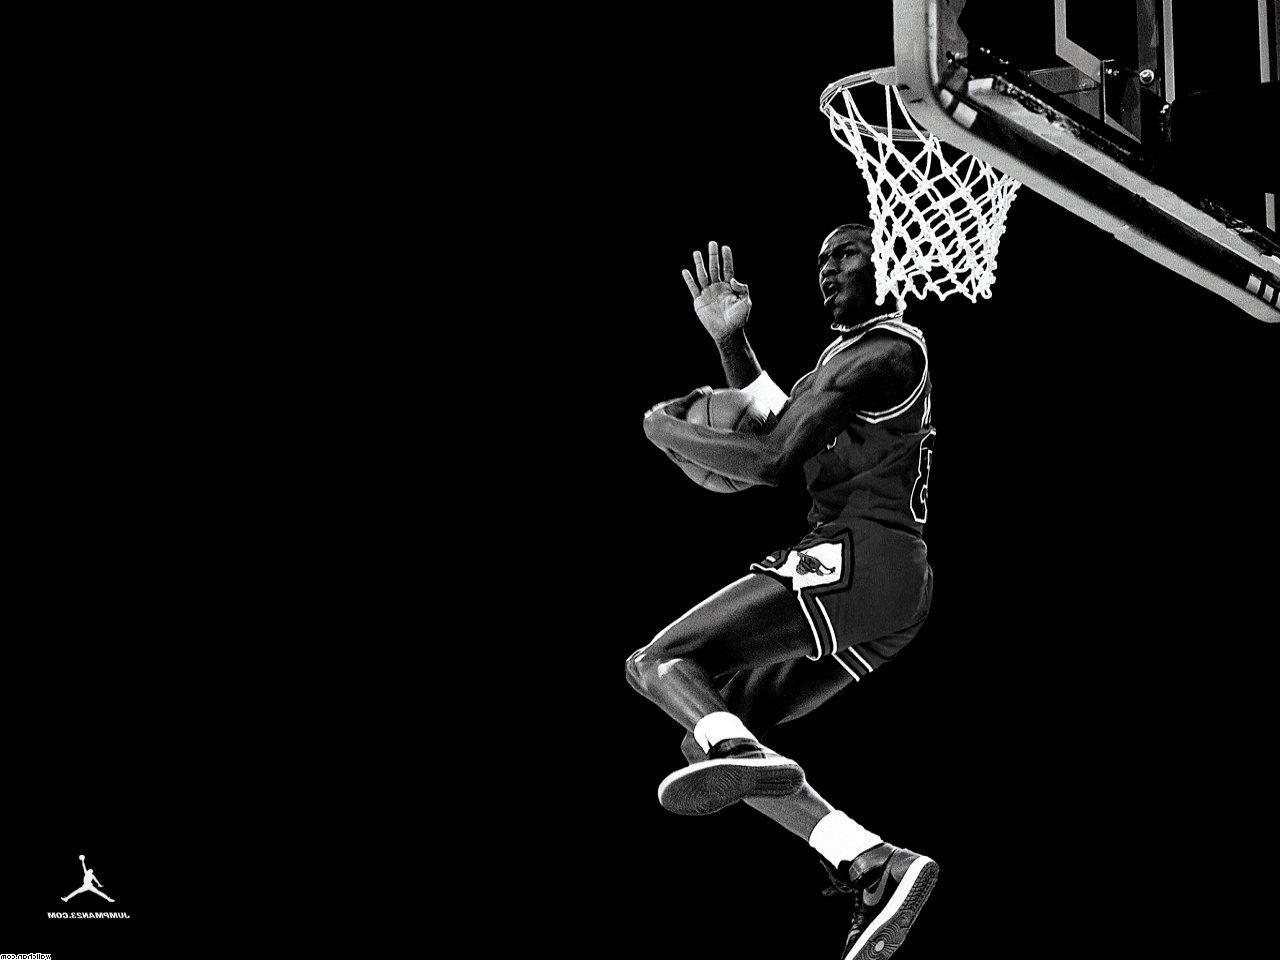 Michael Jordan Wallpaper 1080p: 10 Most Popular Michael Jordan Wallpaper Black And White